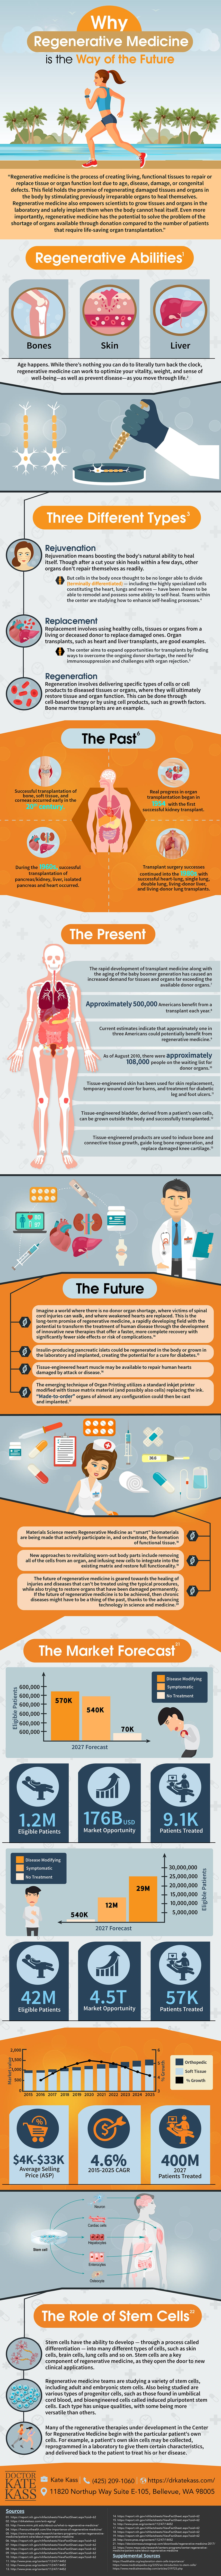 Why Regenerative Medicine is the Way of the Future.jpg